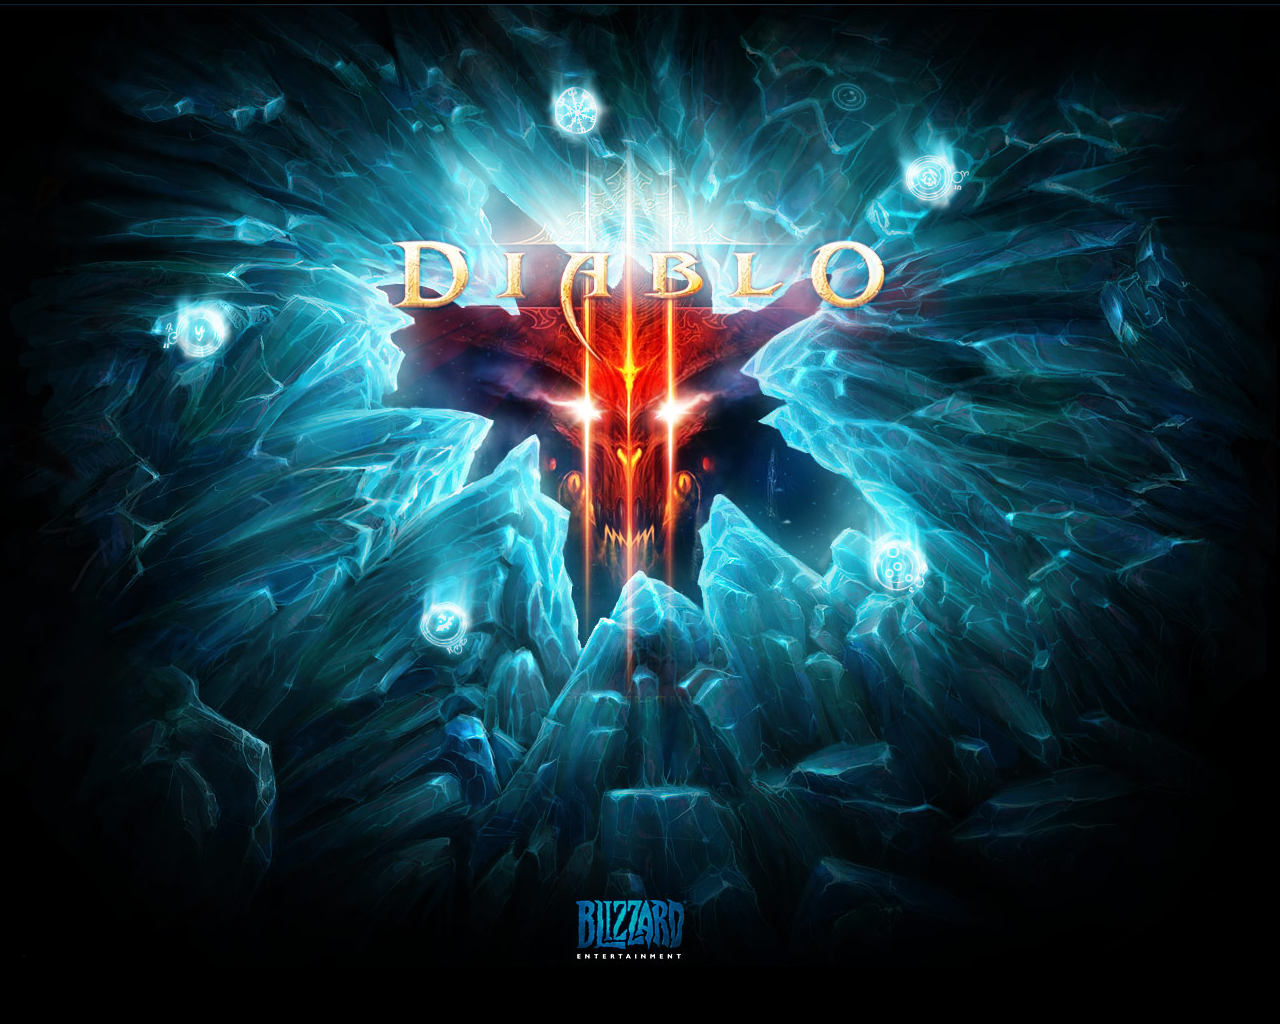 Diablo 3 Wallpaper | Desktop Wallpaper – Desktop Hd Wallpapers